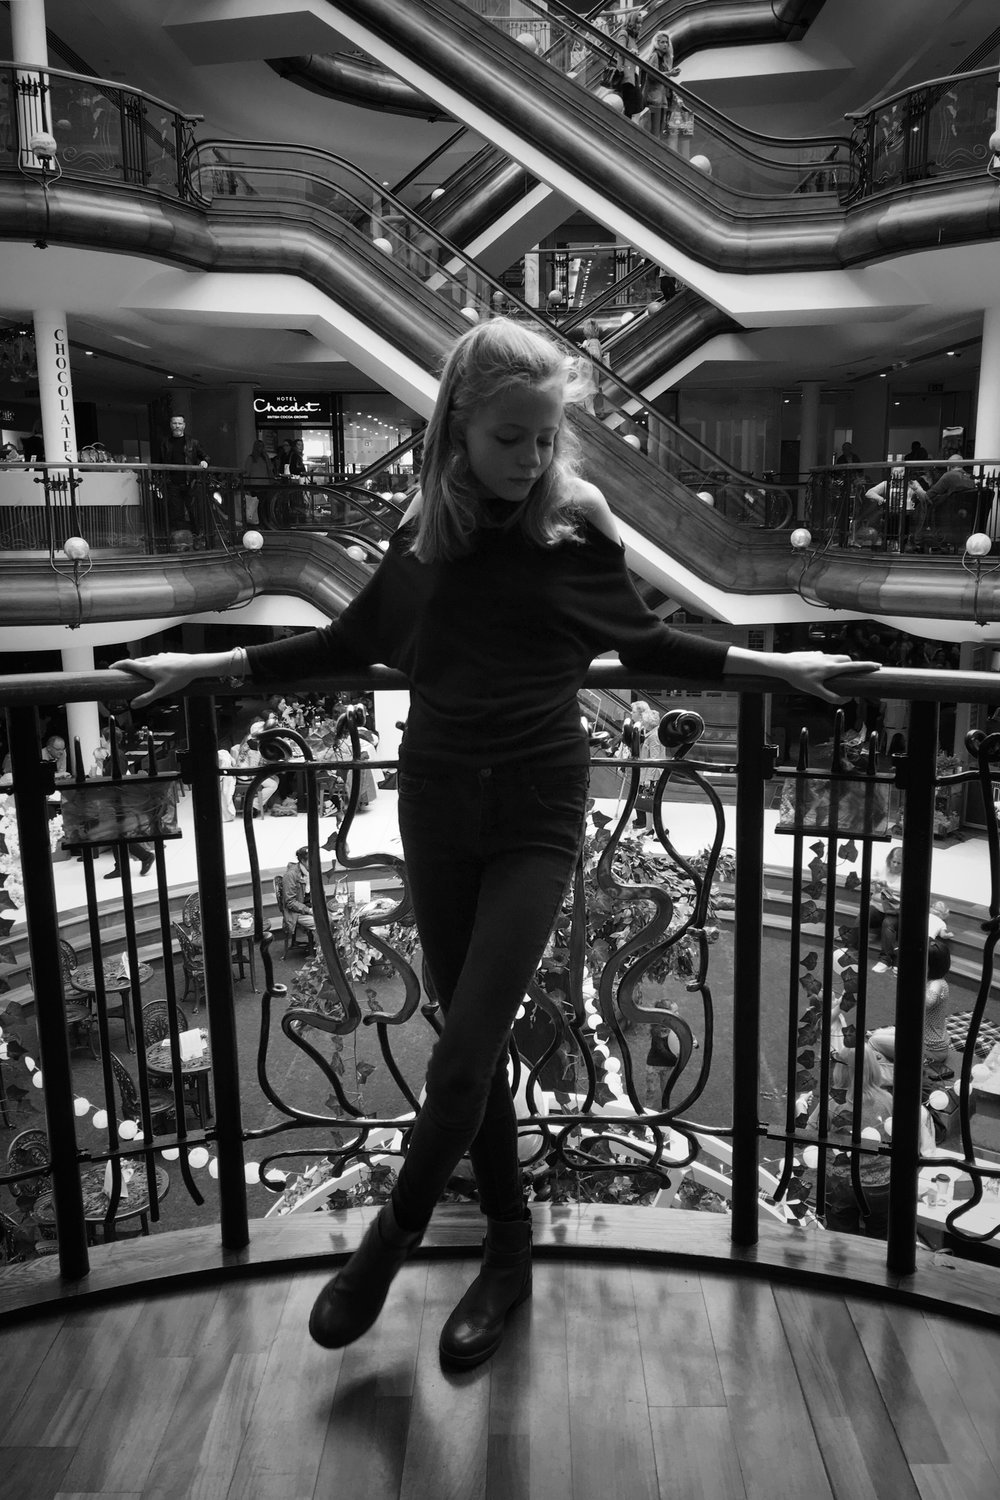 a classy pose from Mia on one of the balconies in Princes Square